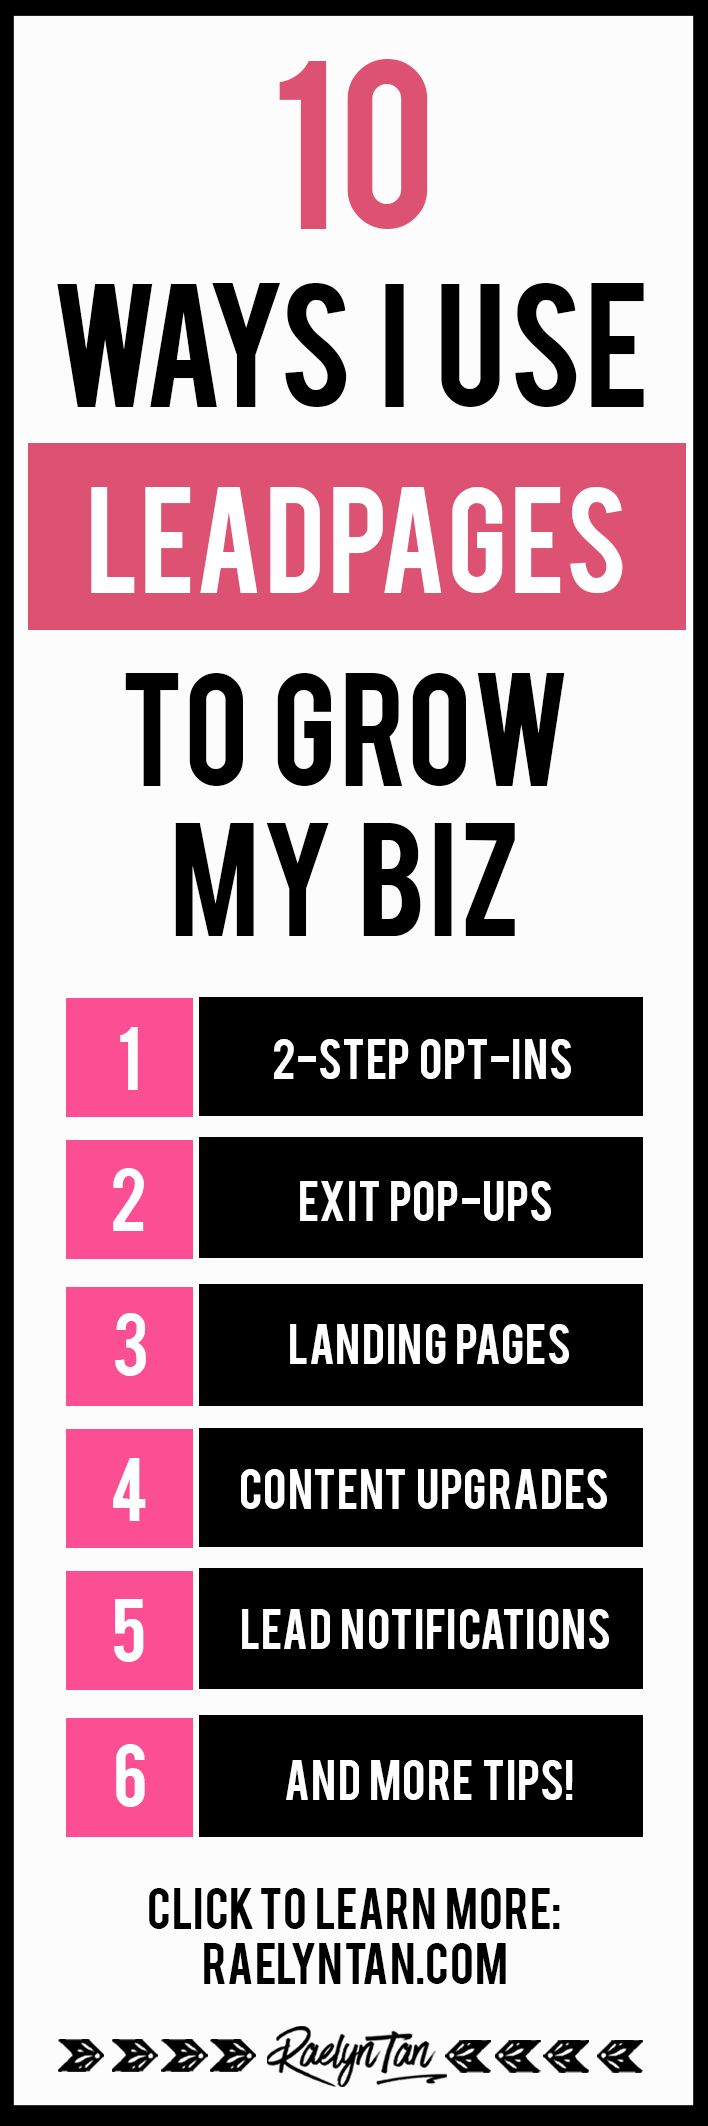 Leadpages tutorial and review: 10 ways I use Leadpages to grow my blog and business. Here are tips on how I use Leadpages to create landing pages without the need design it on my own, webinar pages, use leadboxes, lead notifications, thank you pages and much more!